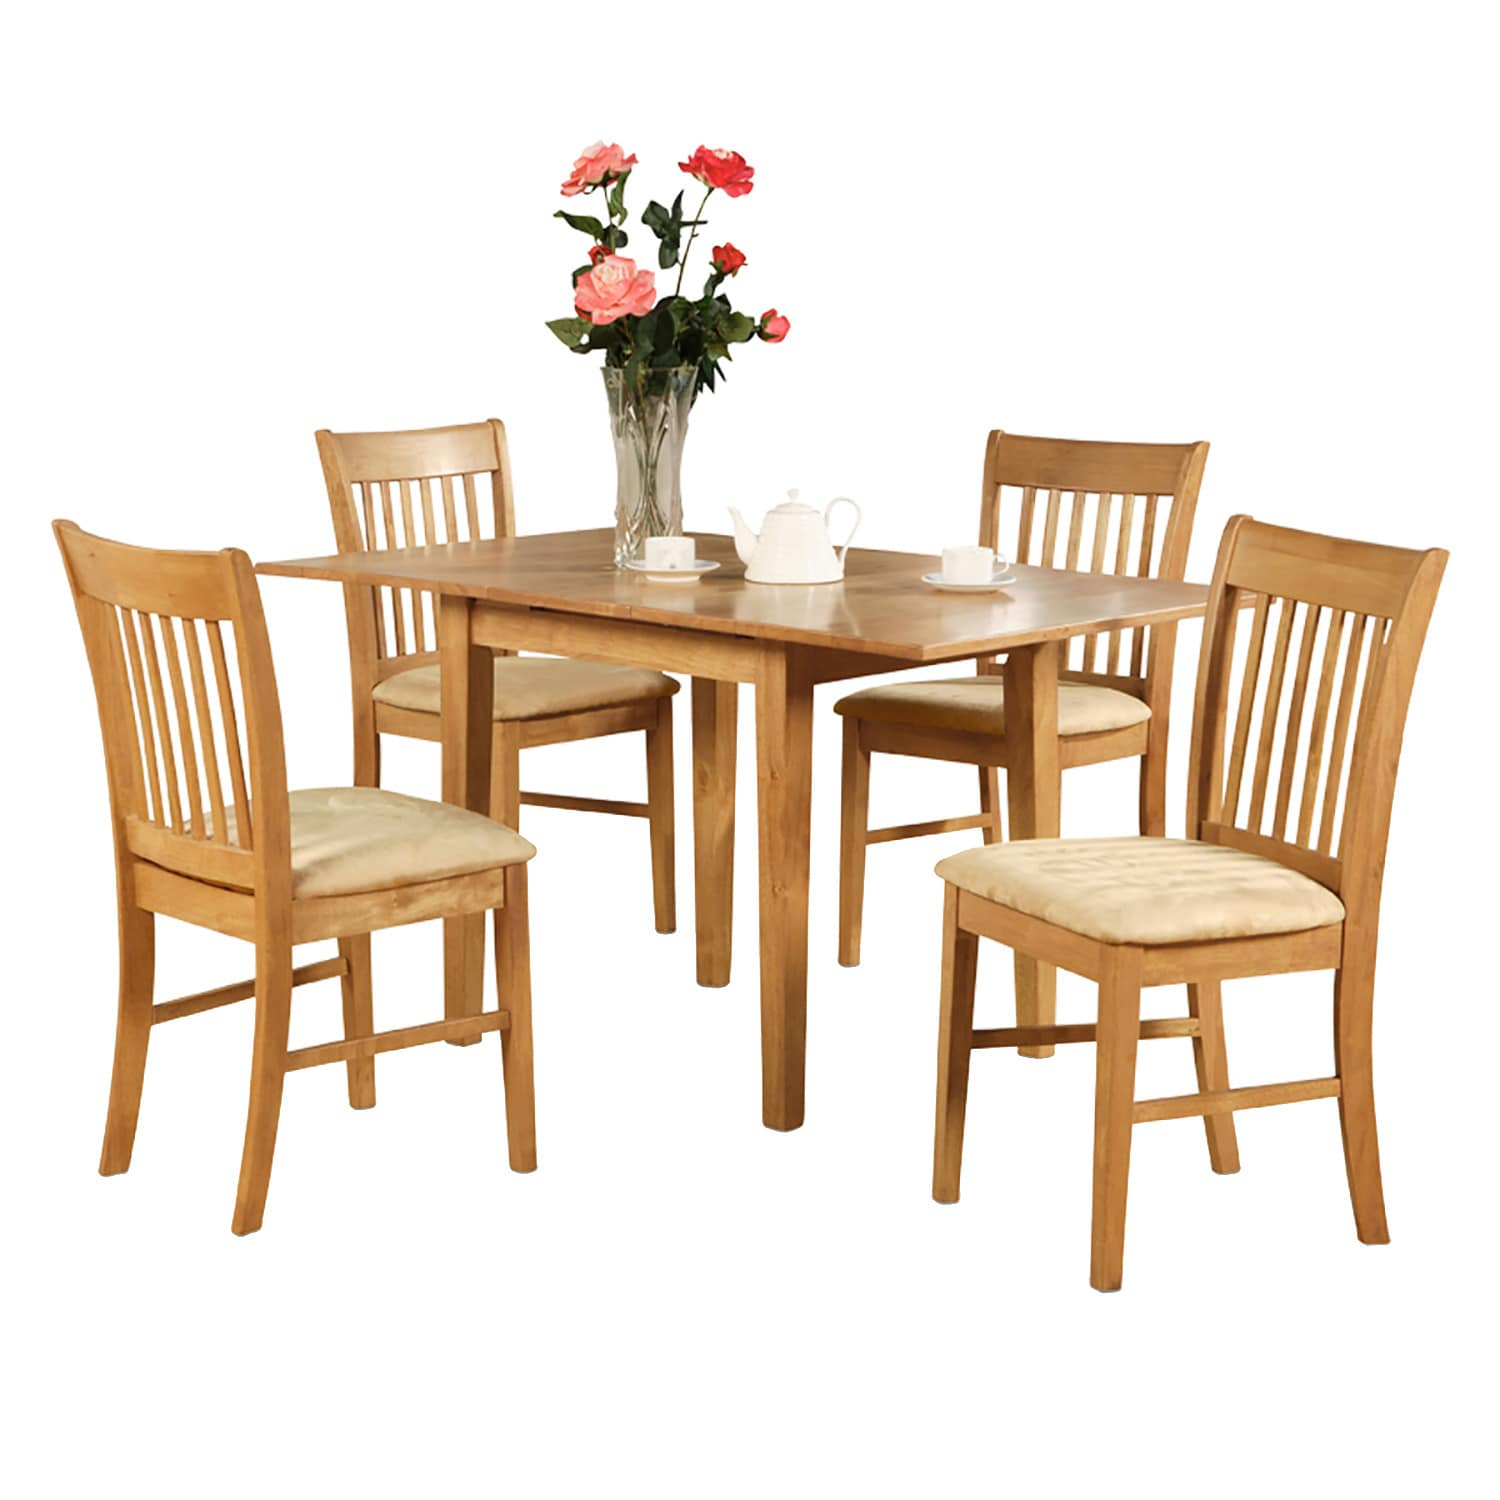 Oak Dinette Table With 12 Inch Leaf And 6 Kitchen Chairs 7 Piece Dining Set